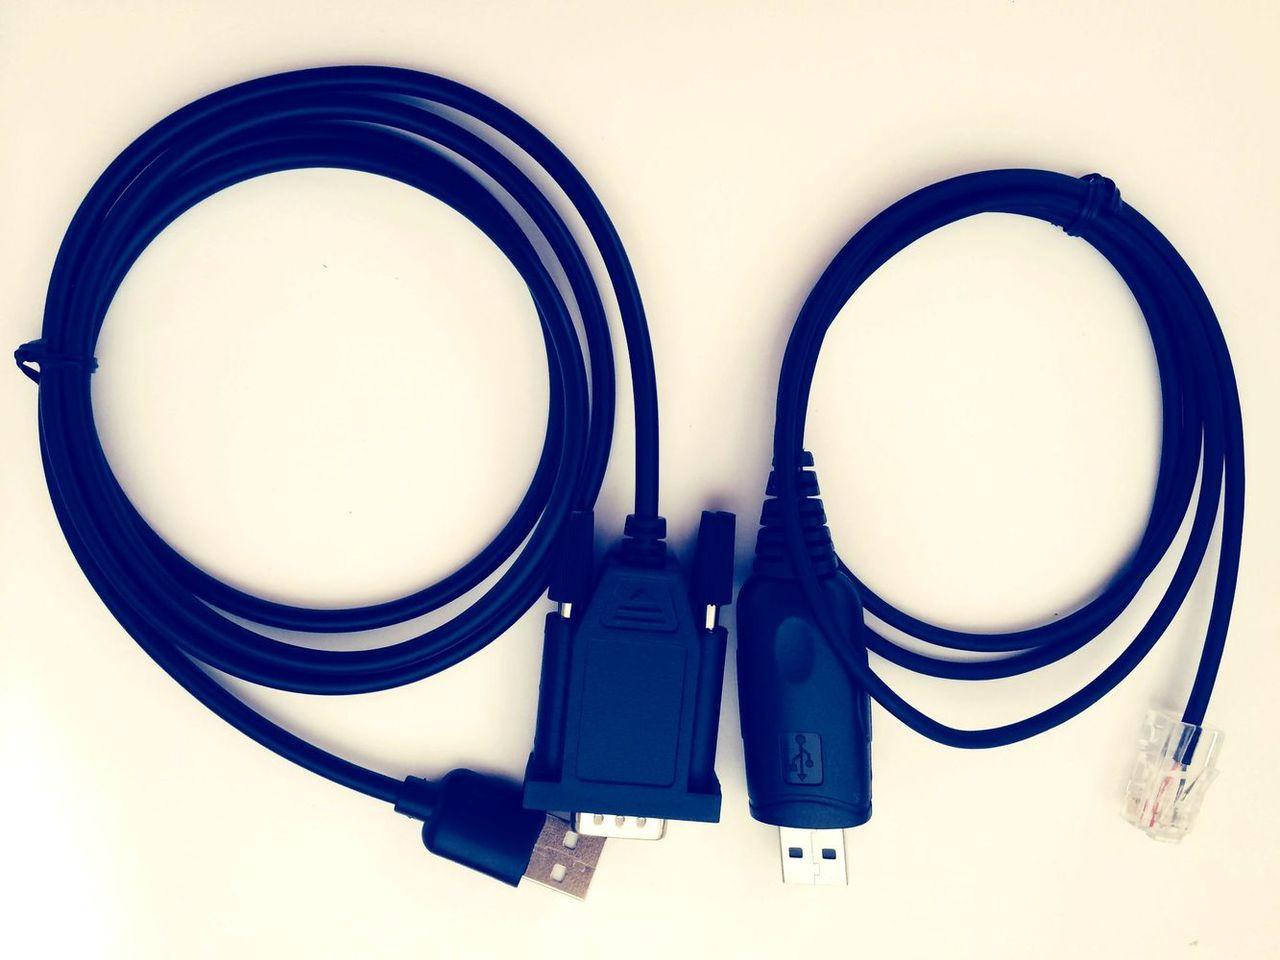 Both Cables cost a total of $25 including shipping